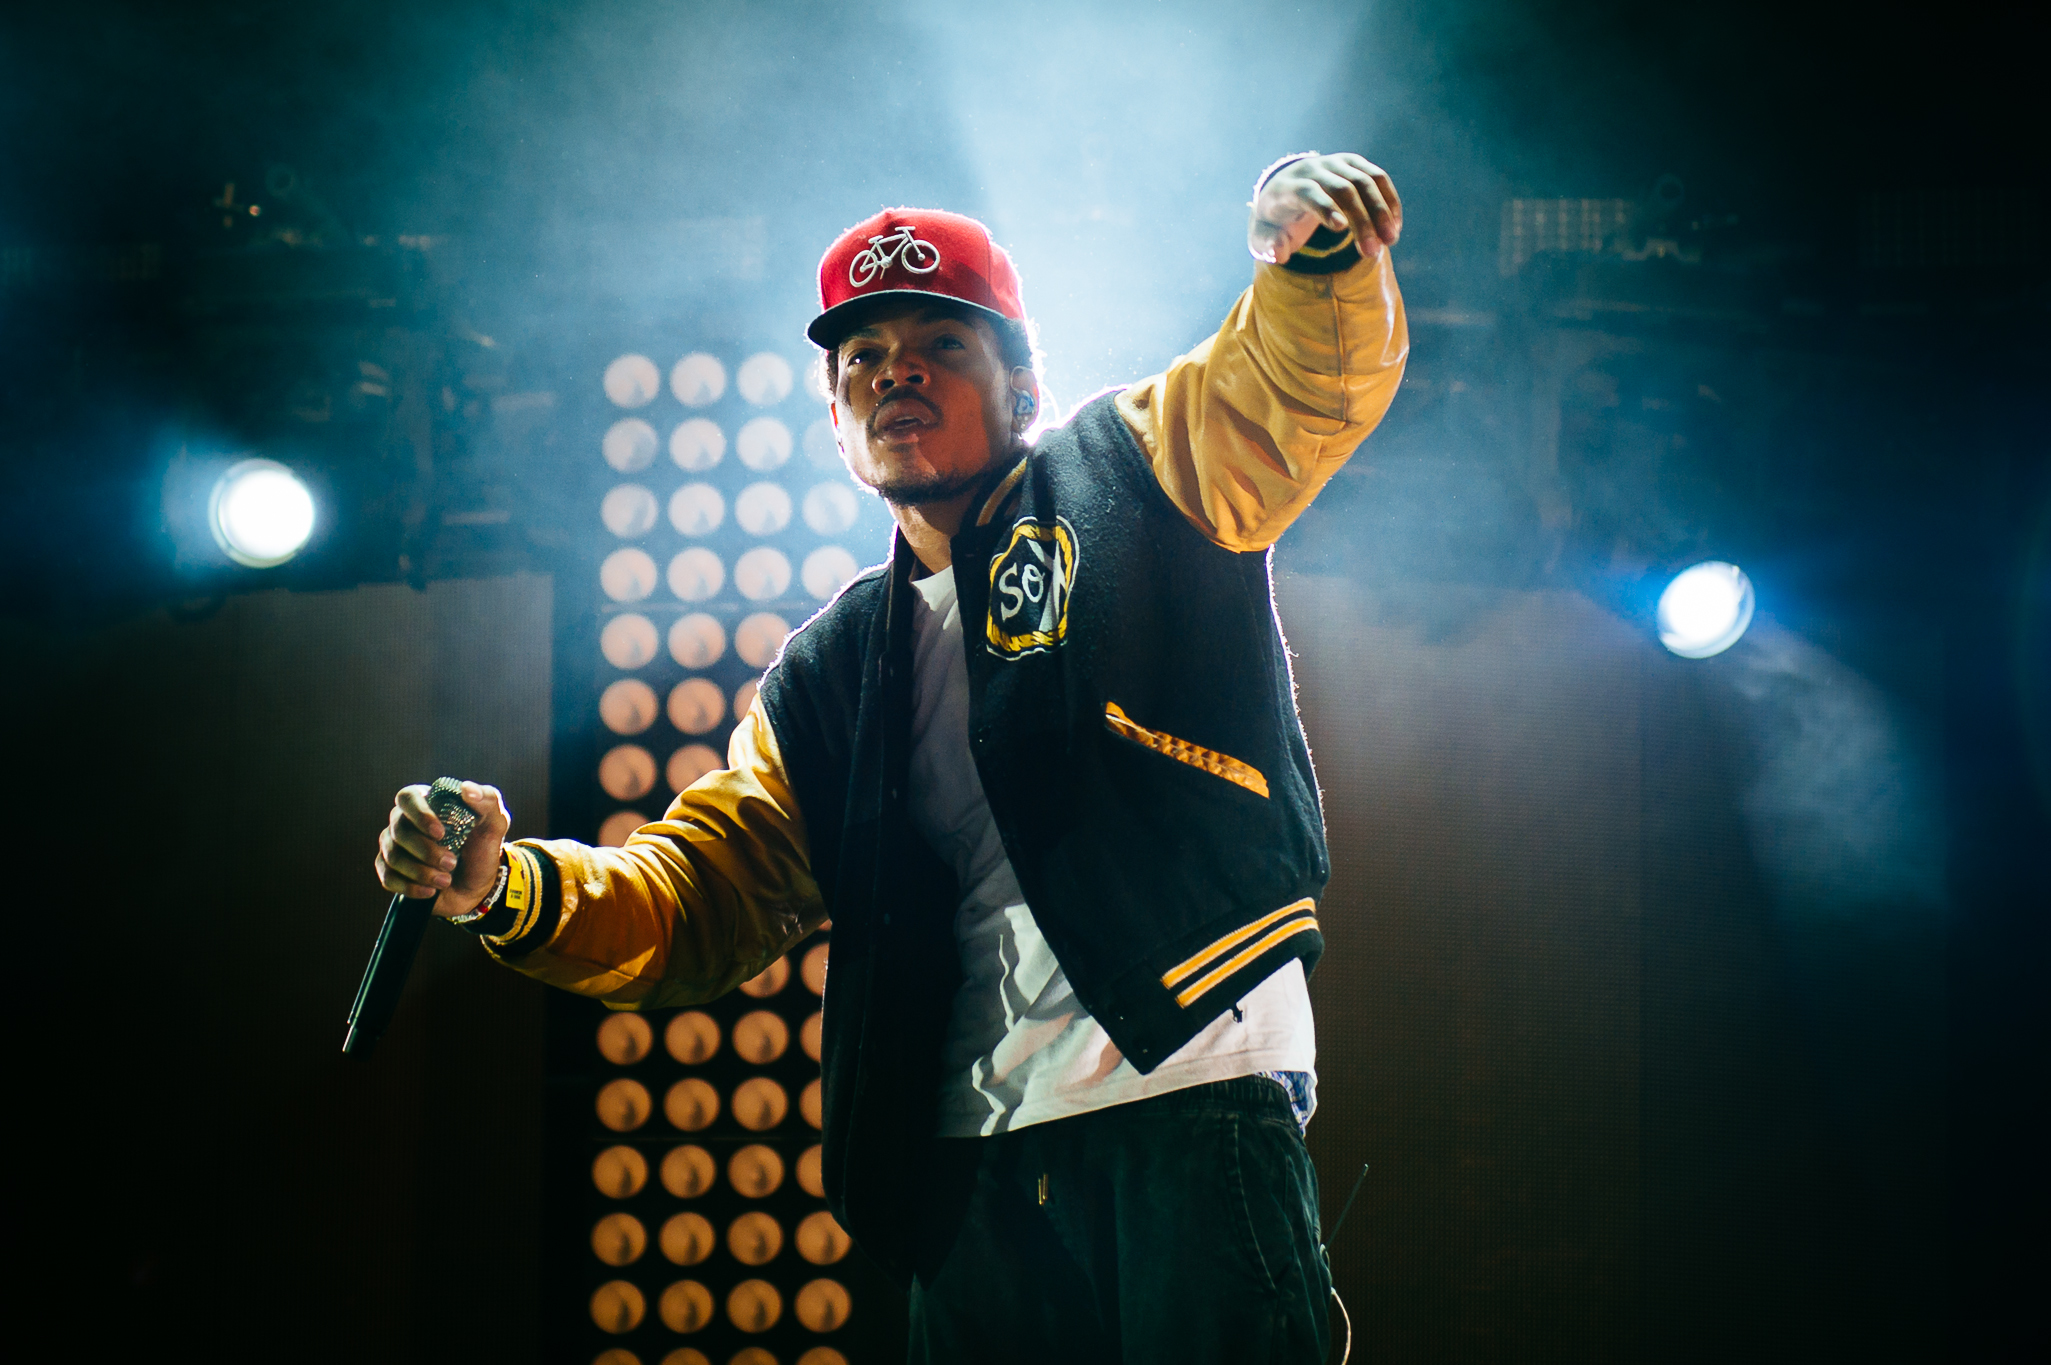 Chance the Rapper returned to Lollapalooza last night